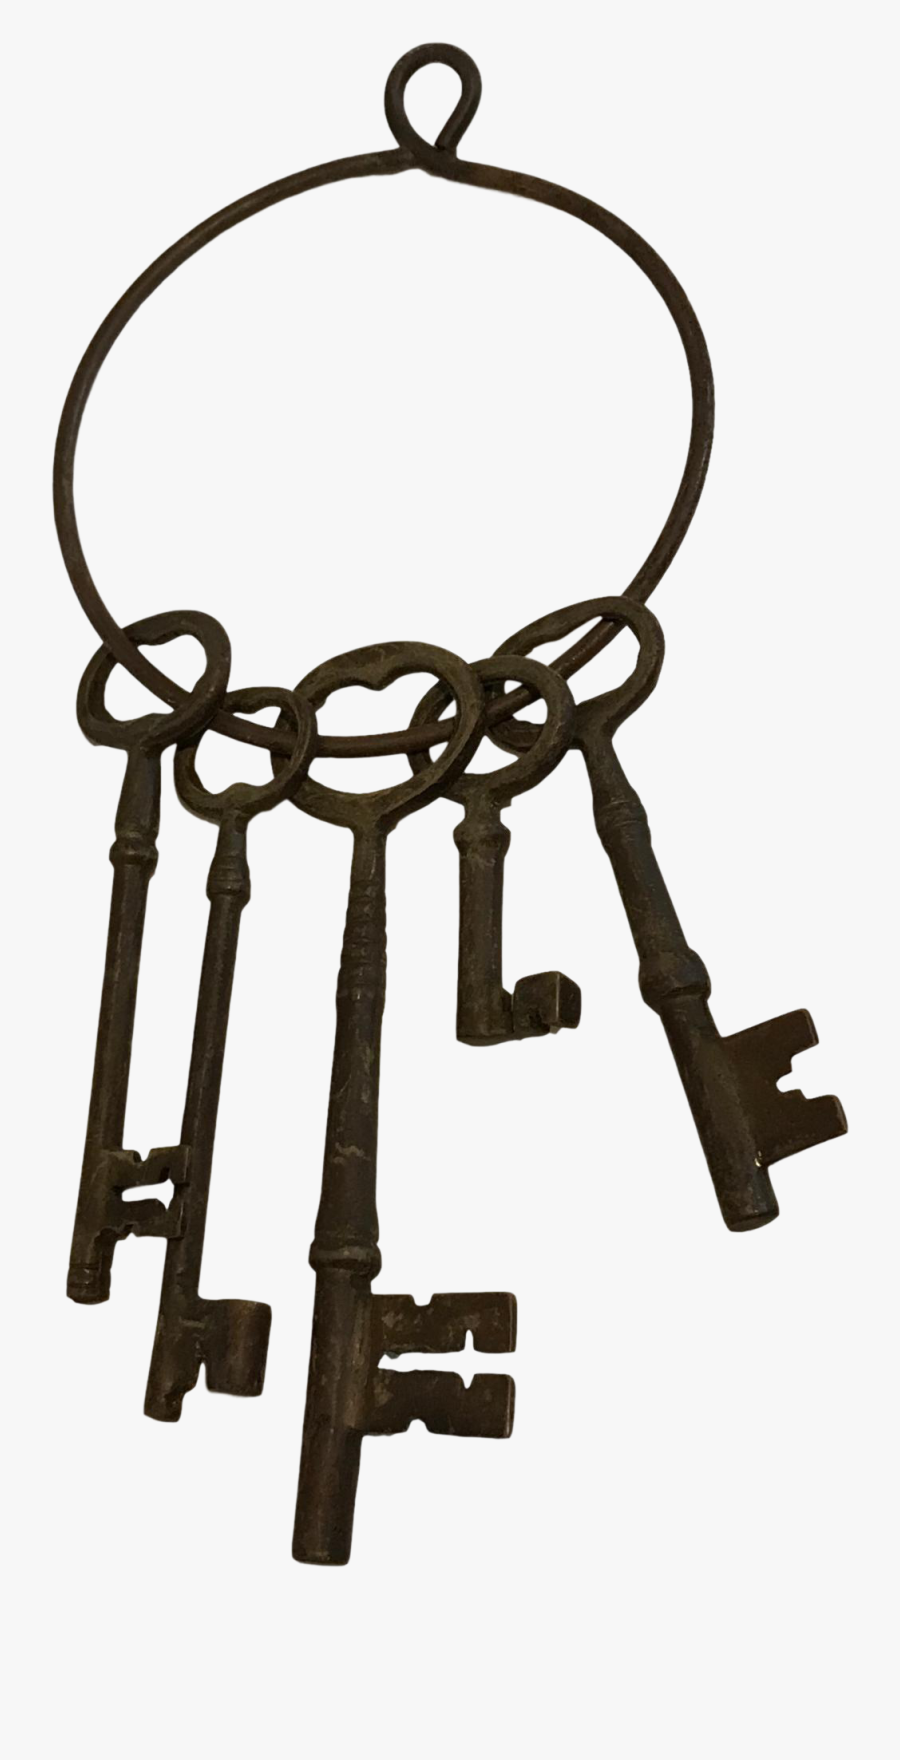 Transparent Boxing Ring Clipart - Ring Of Keys Png, Transparent Clipart